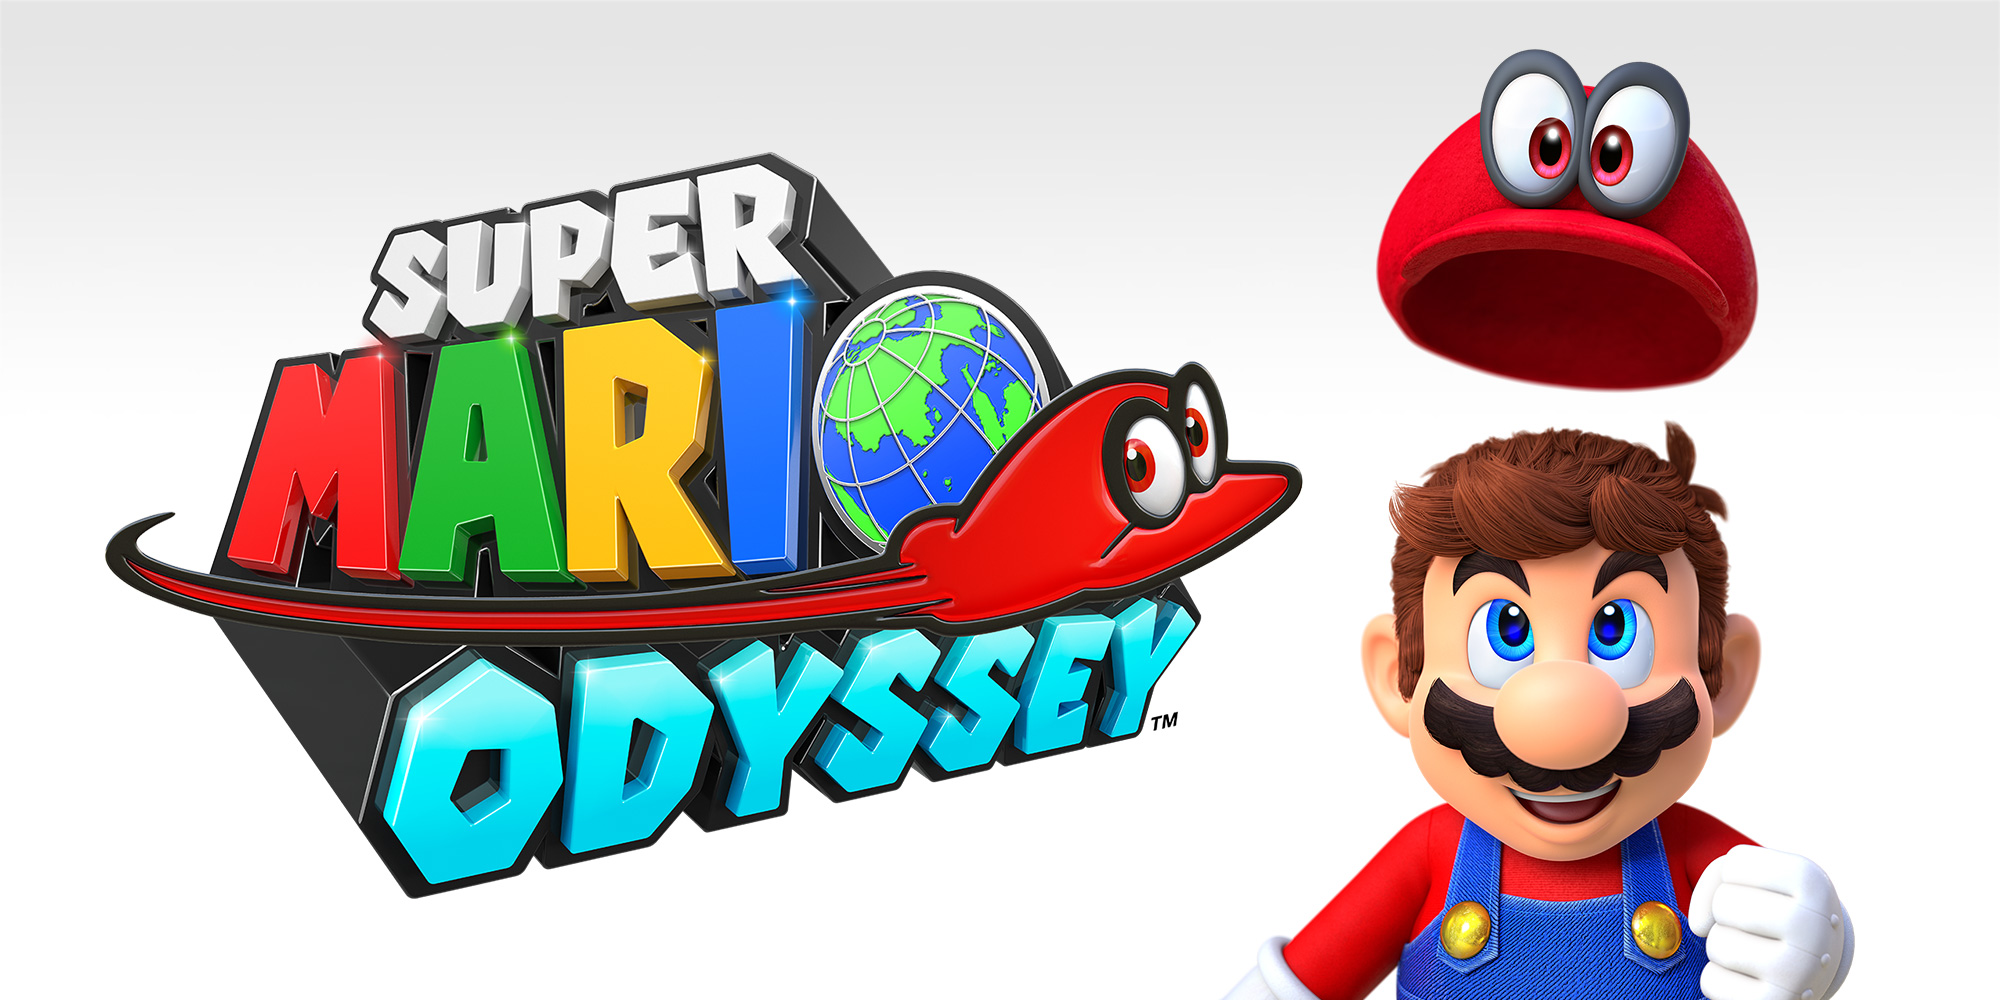 super luigi bros - home of the marioverse, mario & luigi mega fansite